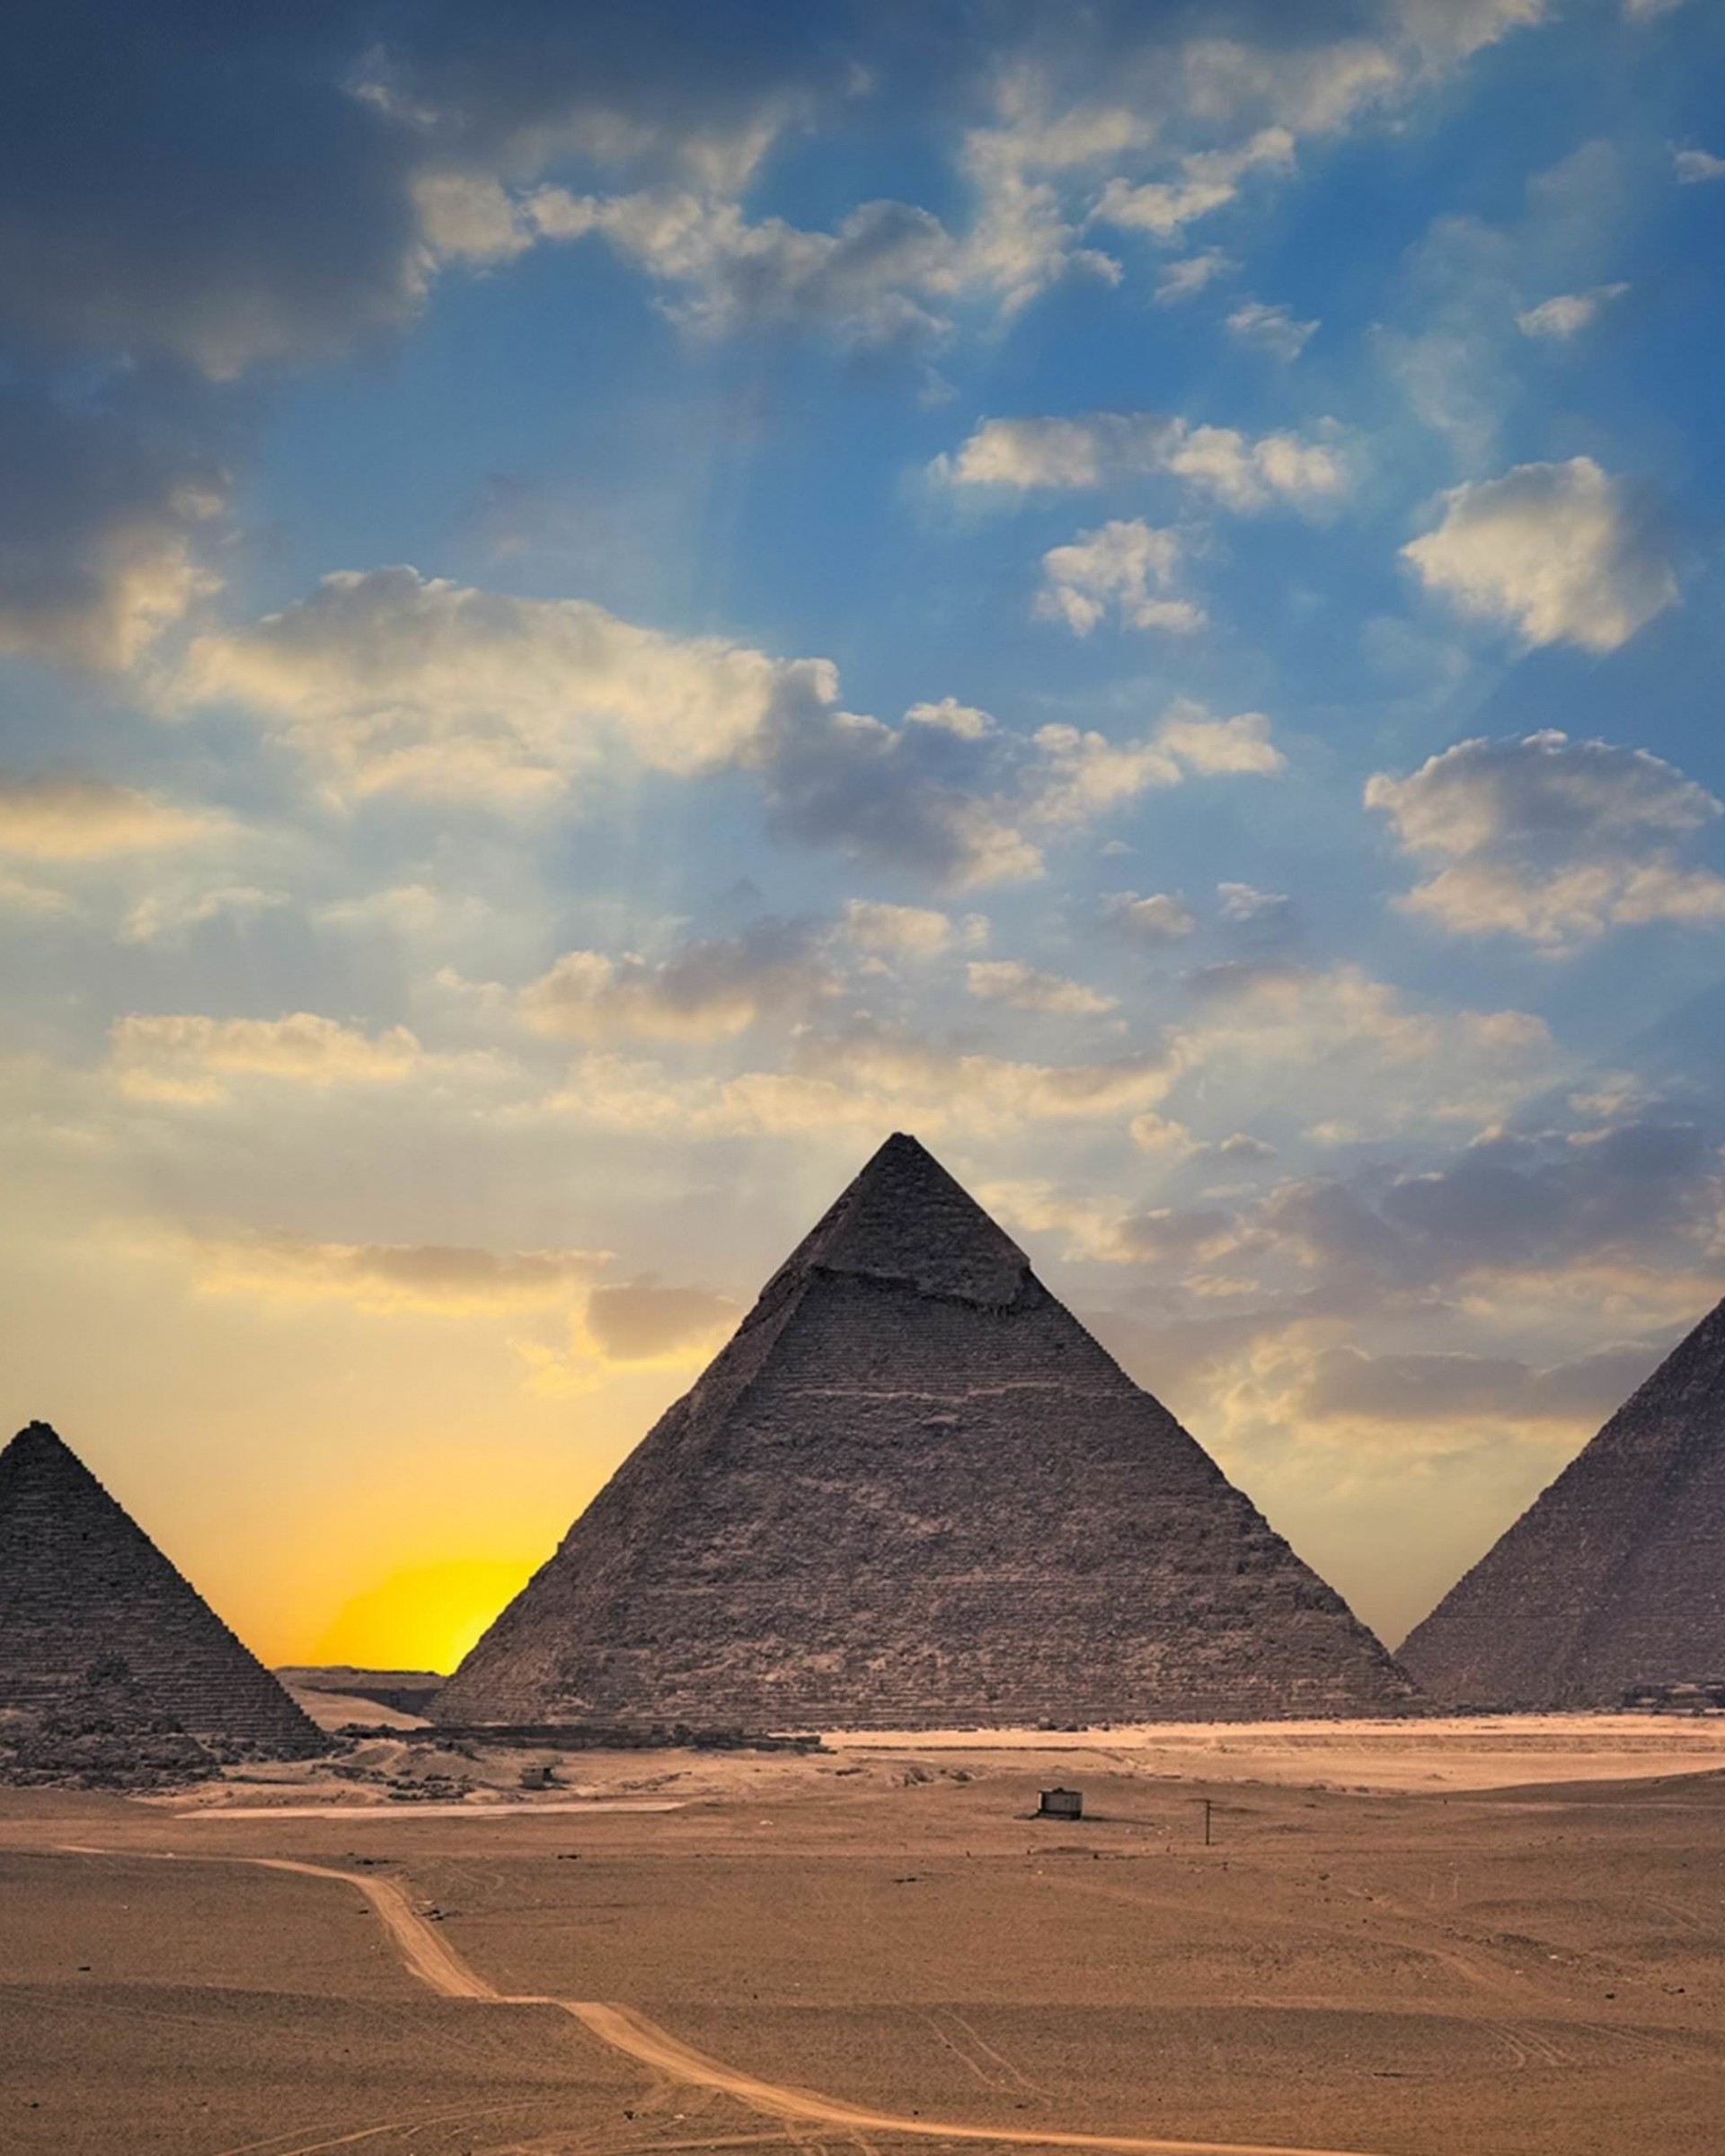 The Great Pyramids of Giza Wallpaper for Google Nexus 7